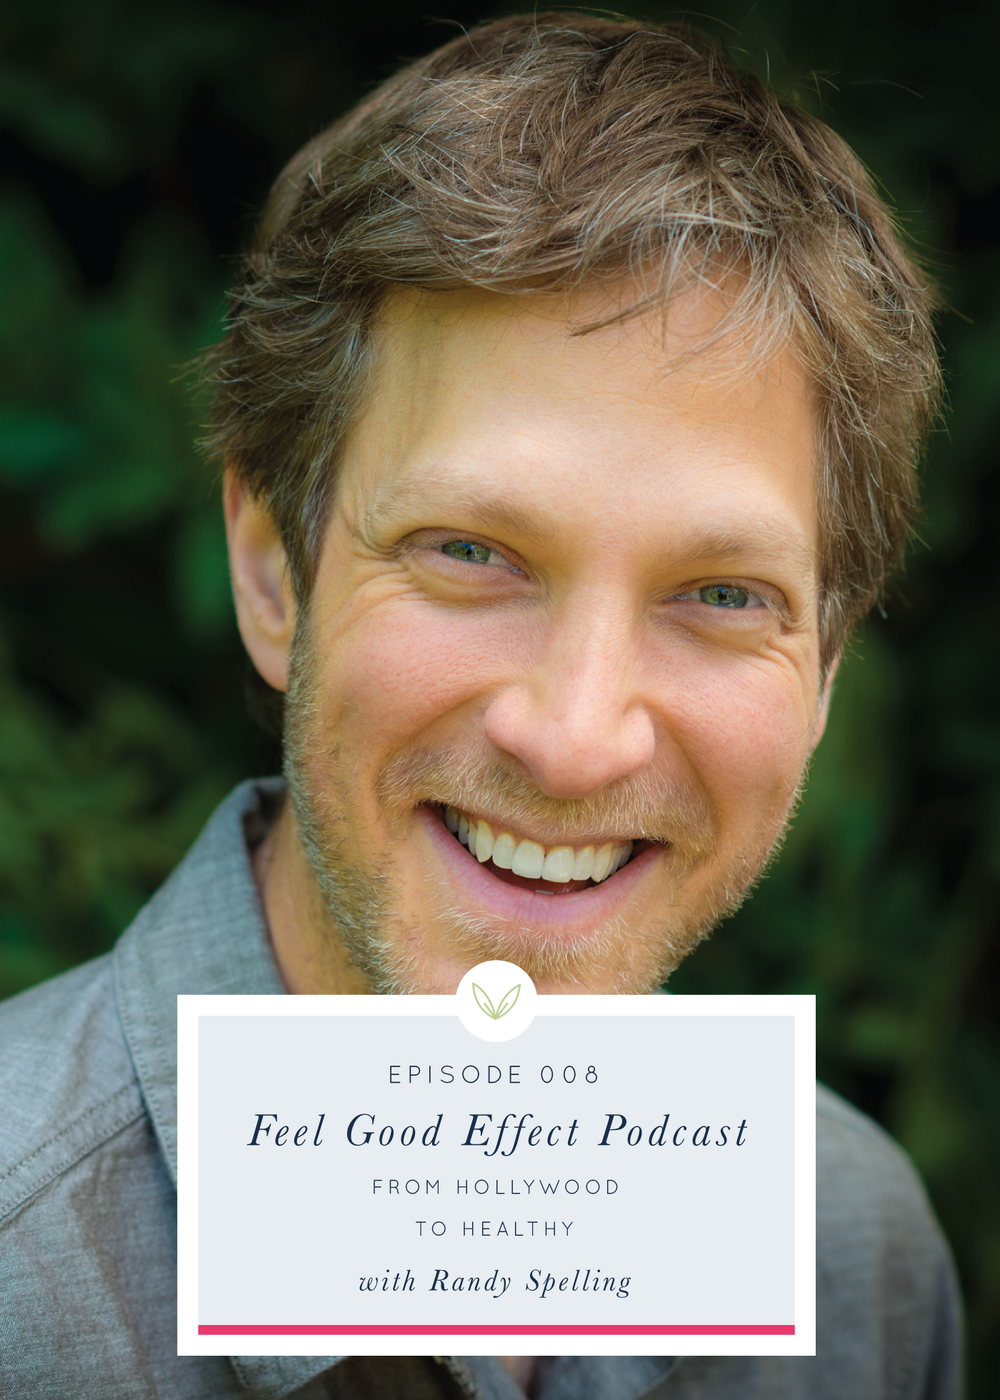 Randy Spelling on the Feel Good Effect Podcast